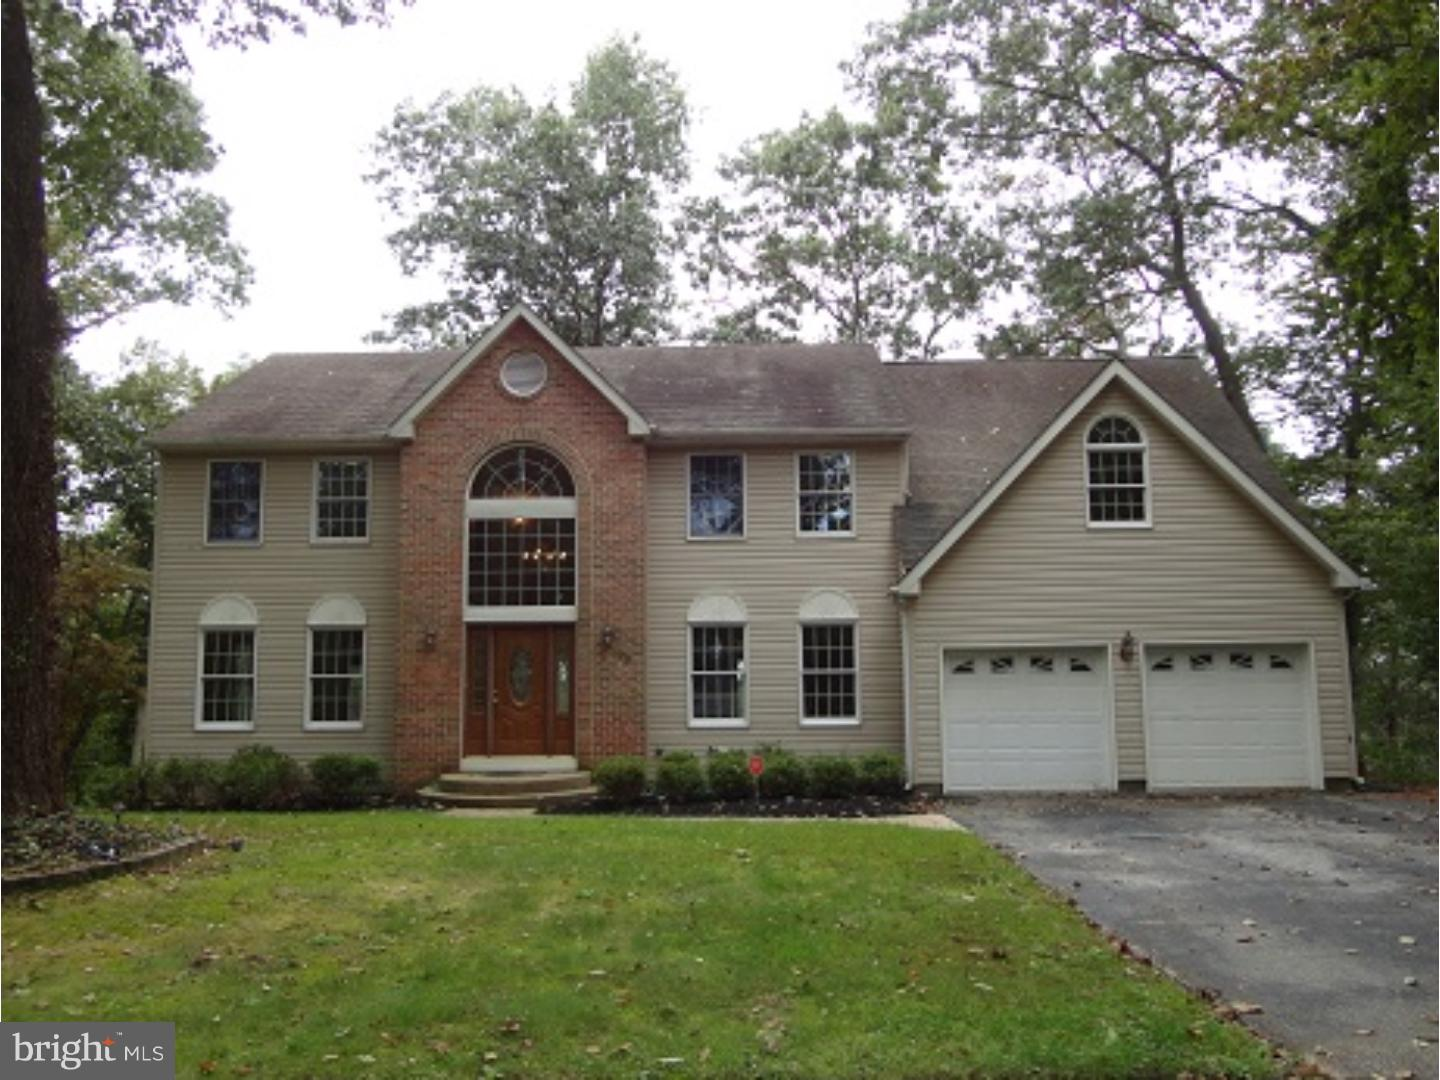 Single Family Home for Sale at 25 NOTTINGHAM Drive Winslow, New Jersey 08081 United States